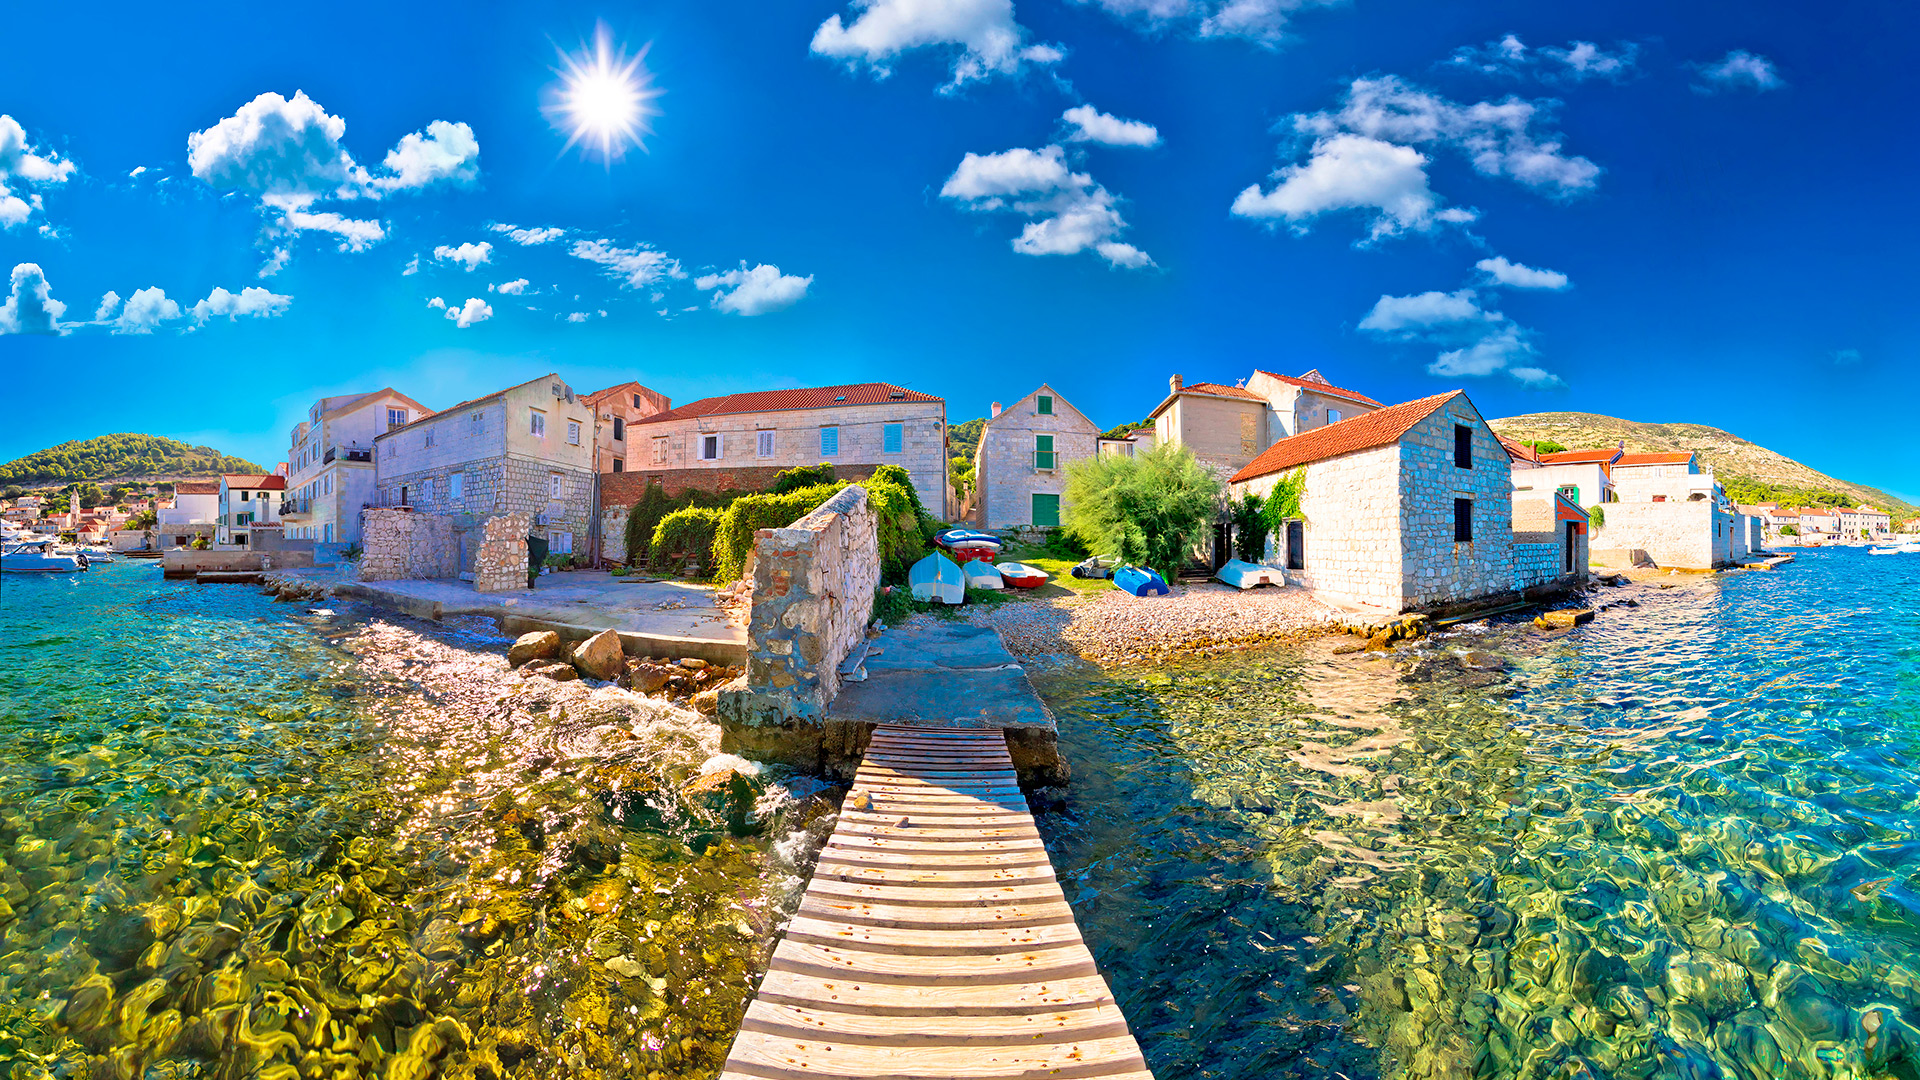 Vis island, Croatia - Croatian waters SimpleSail sailing routes